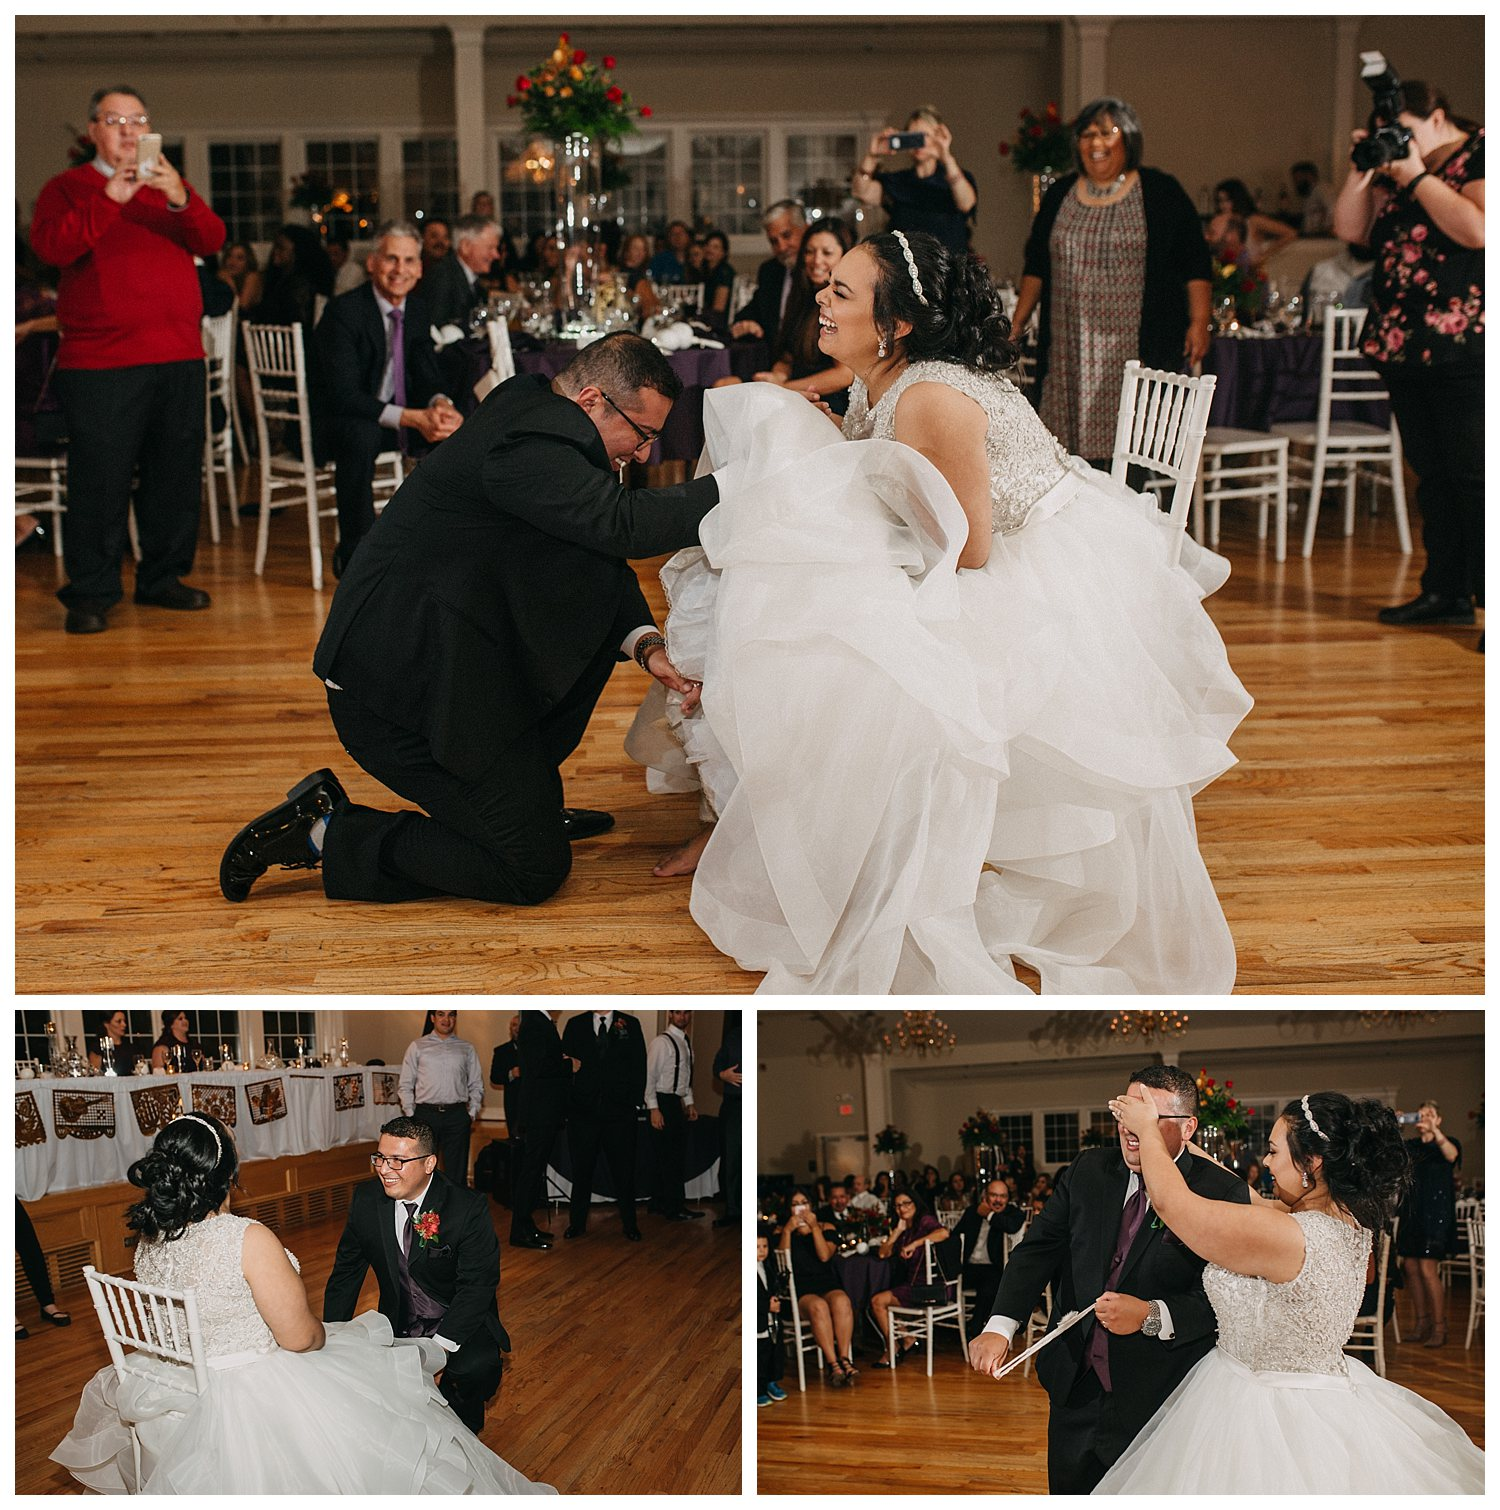 Kelsey_Diane_Photography_Hawthorne_House_Parkville_Kansas_City_Wedding_Veronica_Pat_0075.jpg